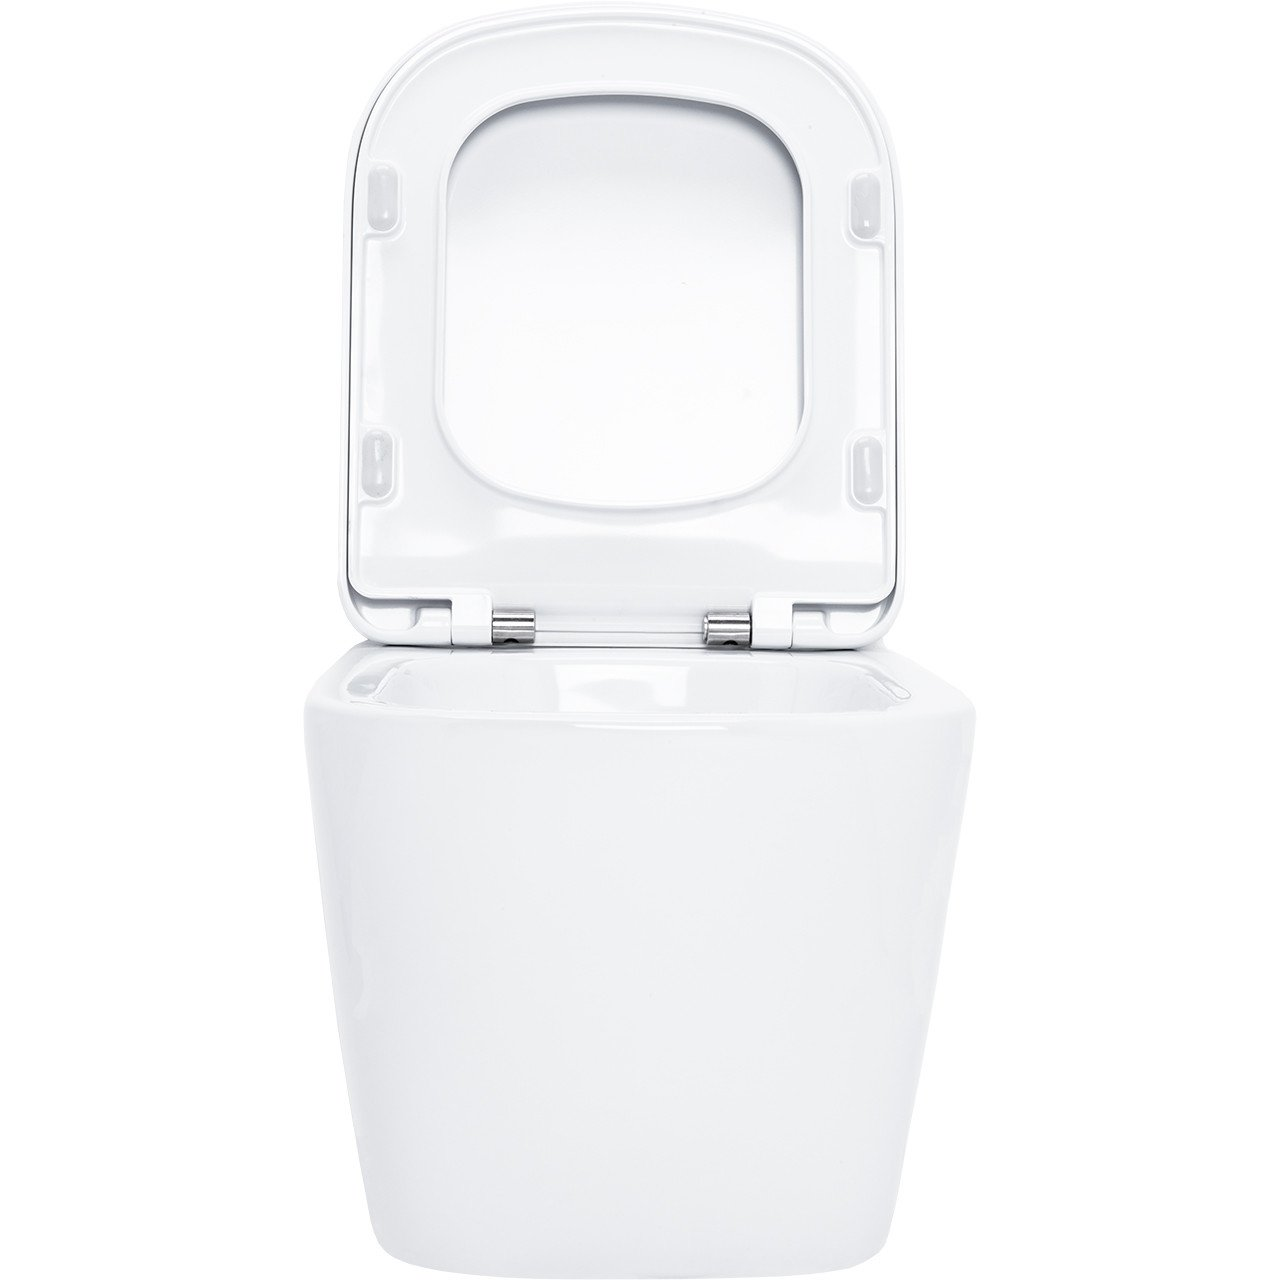 Galata Wall Hung Toilet with Slow Close Seat Front